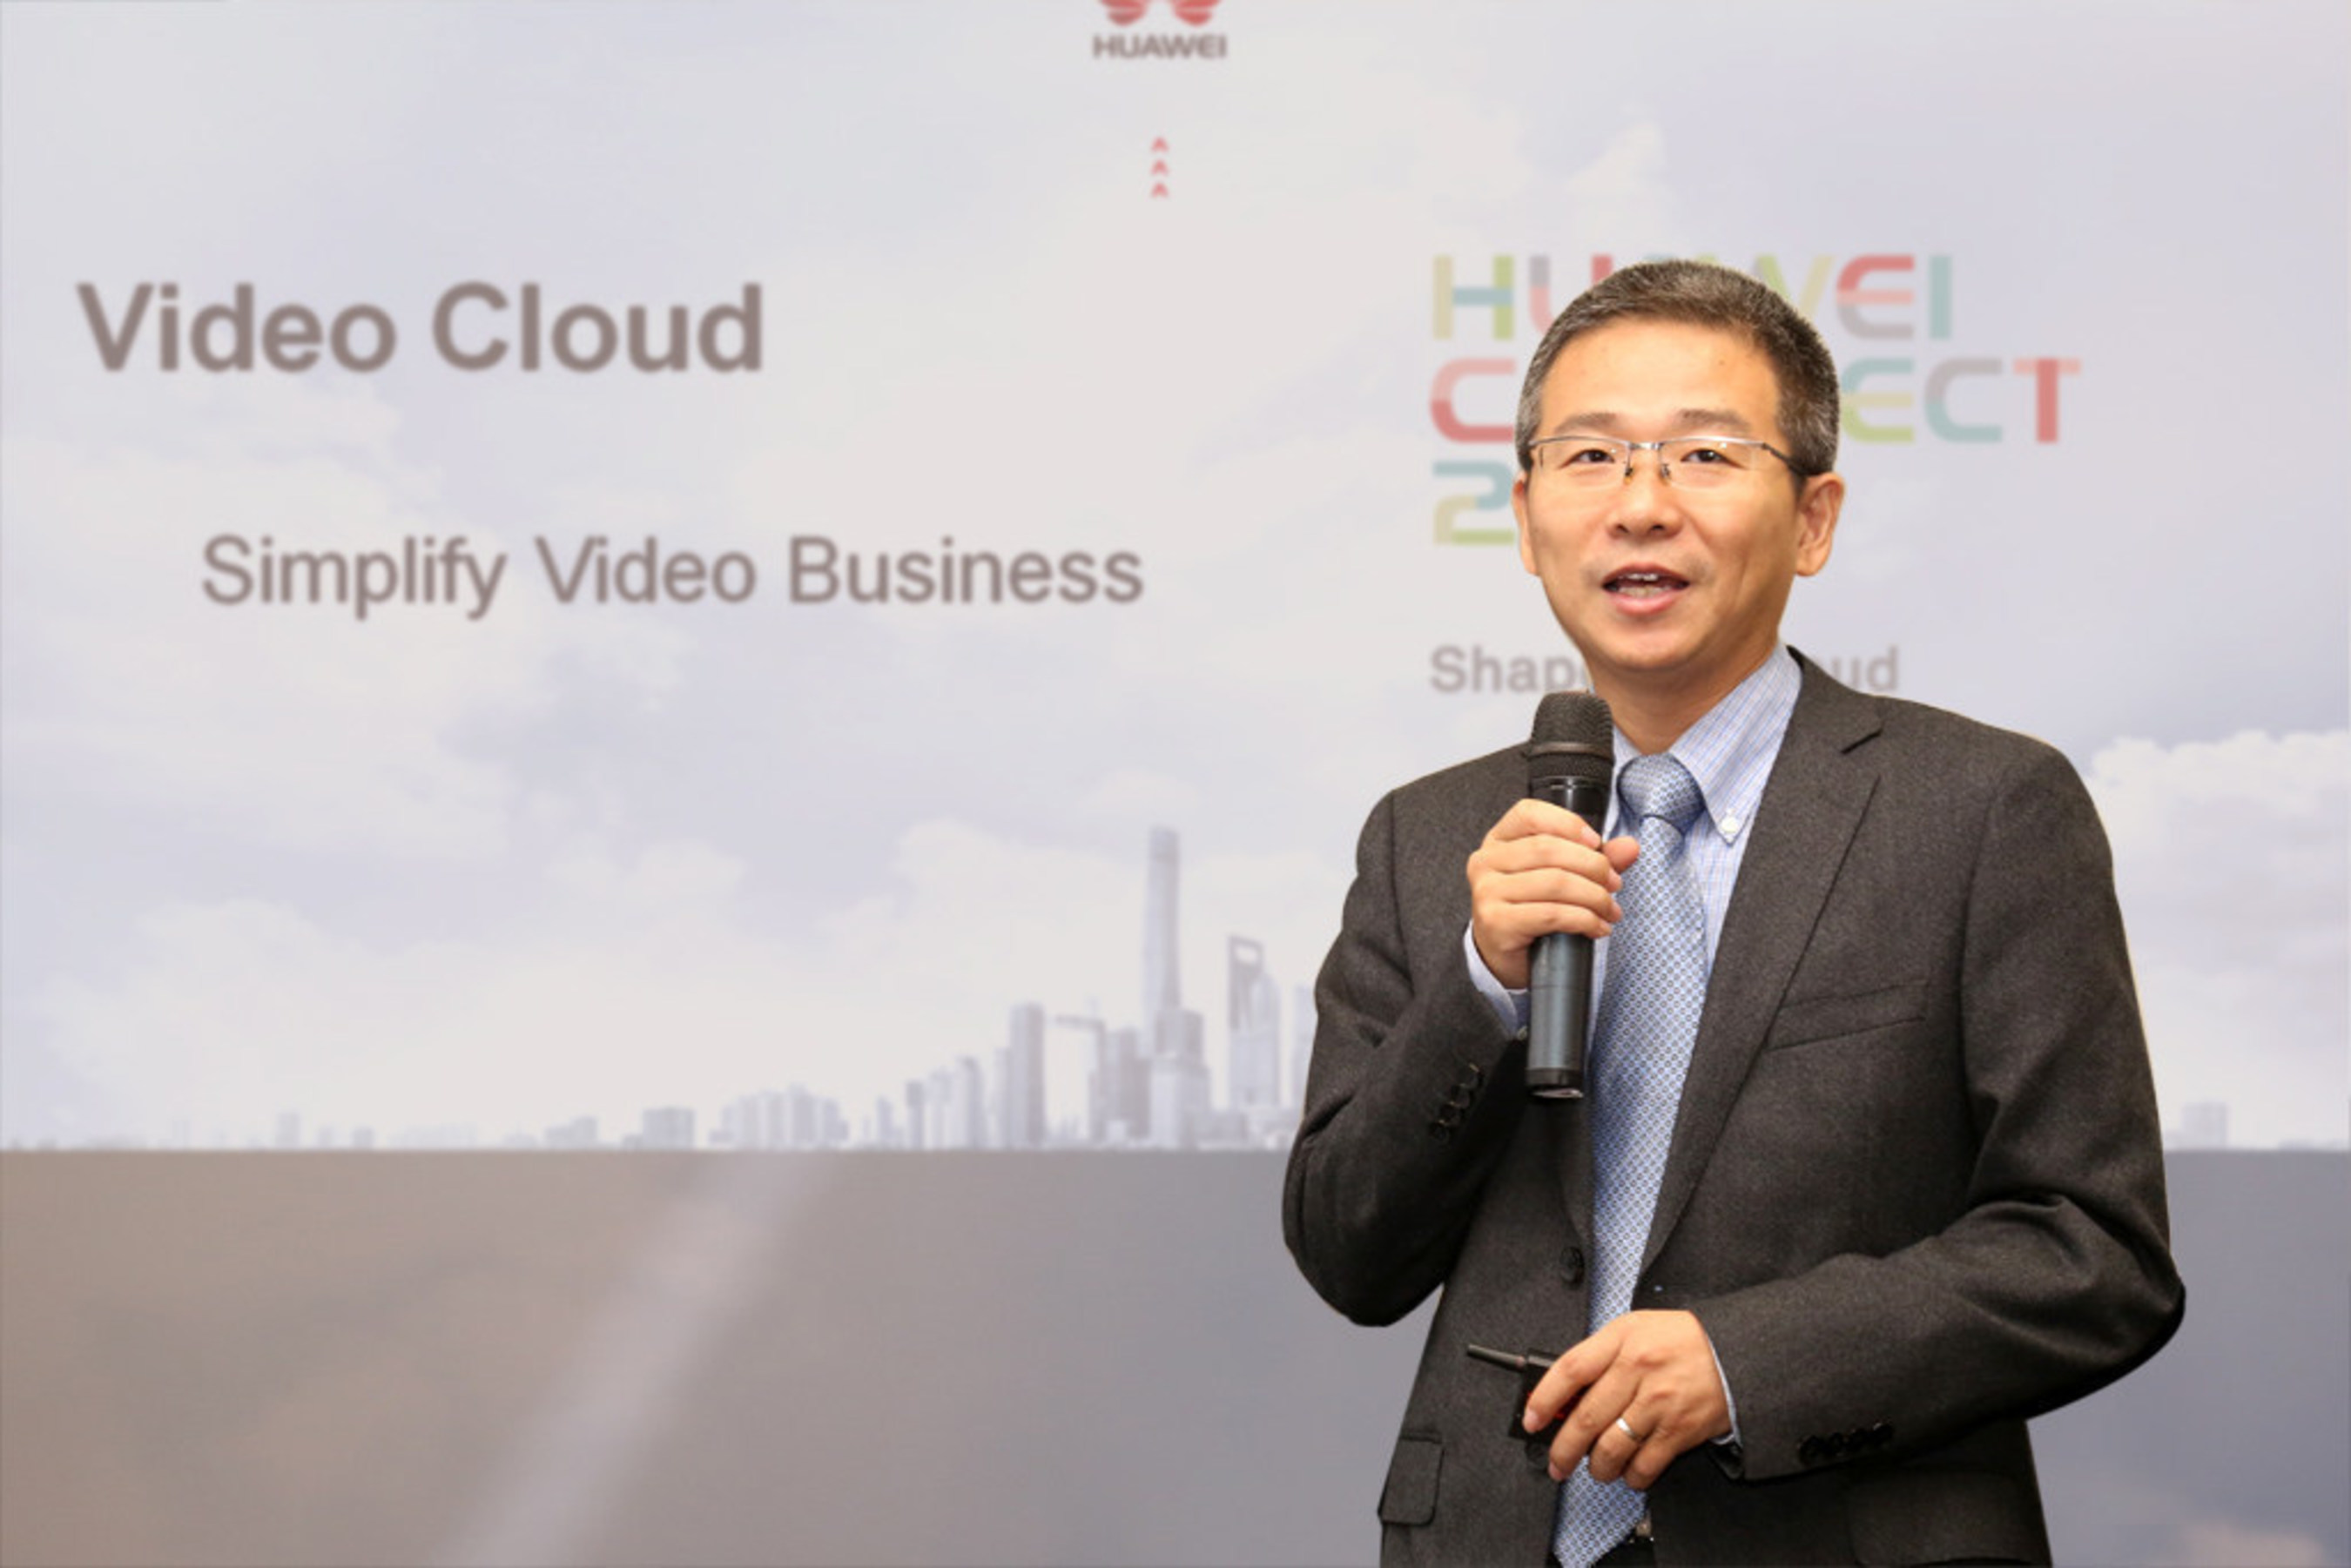 Huawei Announces Video Cloud to Simplify Video Service